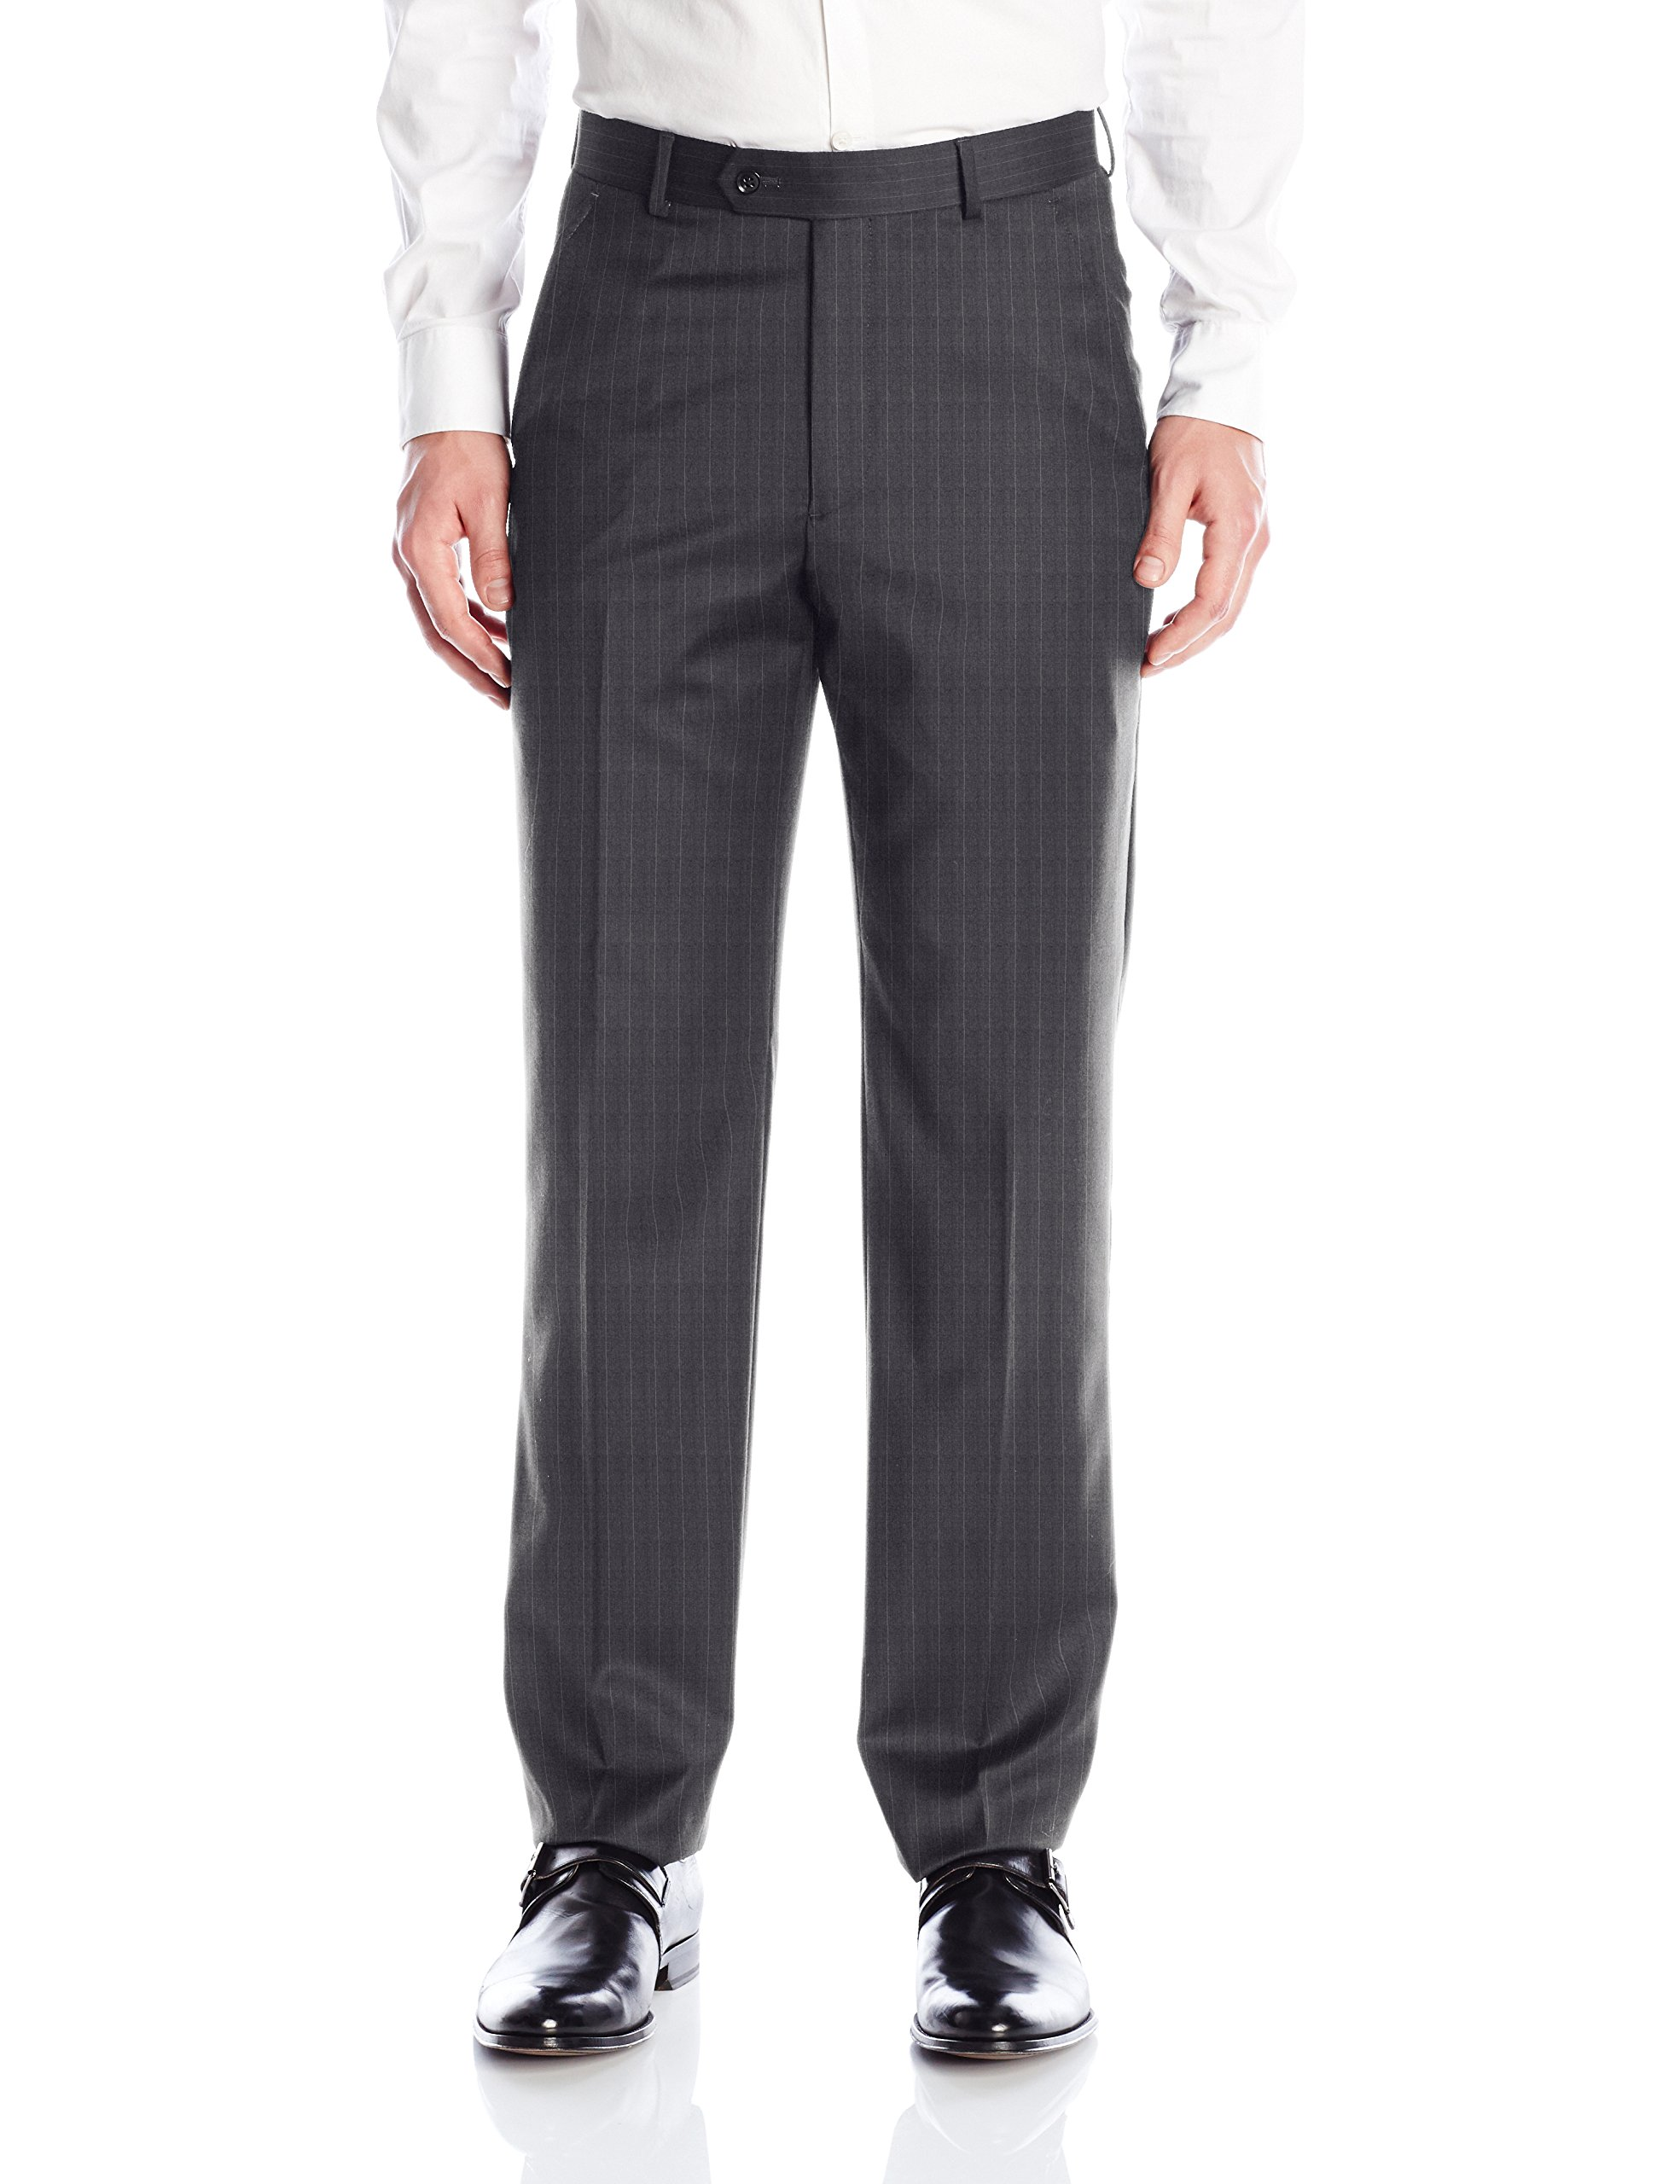 Palm Beach Men's Cole Suit Seperate Pant, Grey Stripe, 40W Regular by Palm Beach